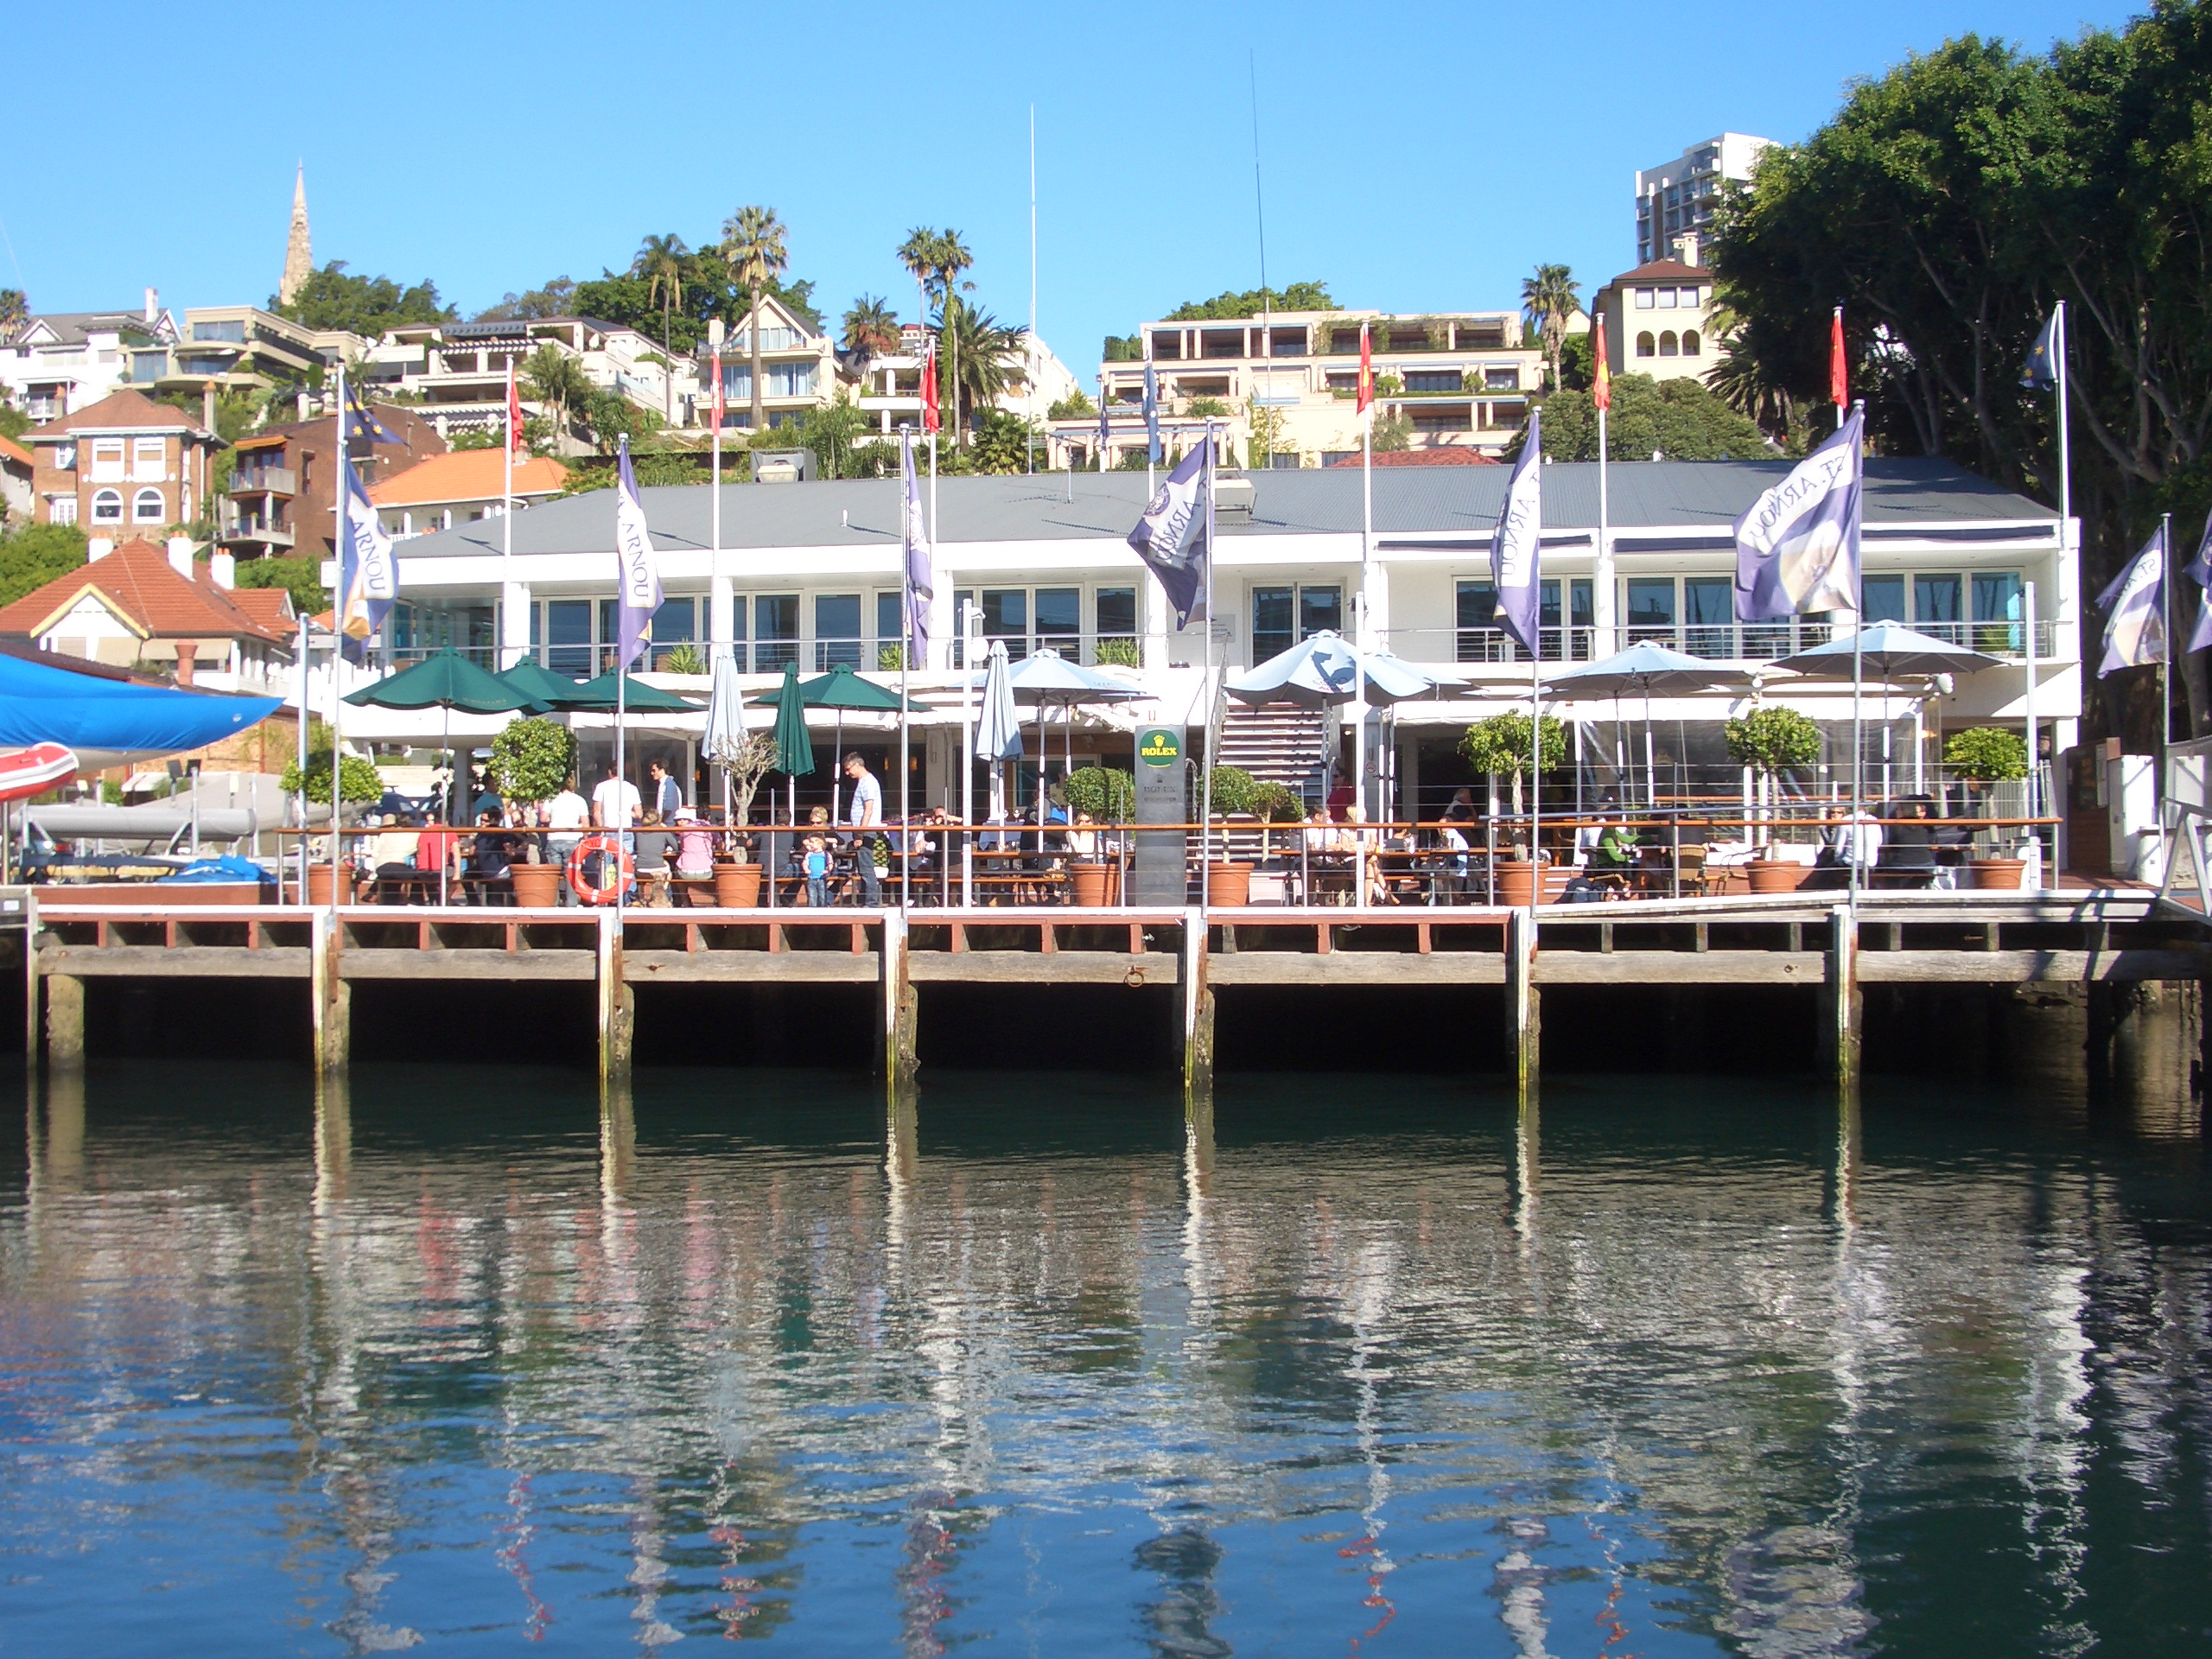 Darling Point Cruising Yacht Club of Australia